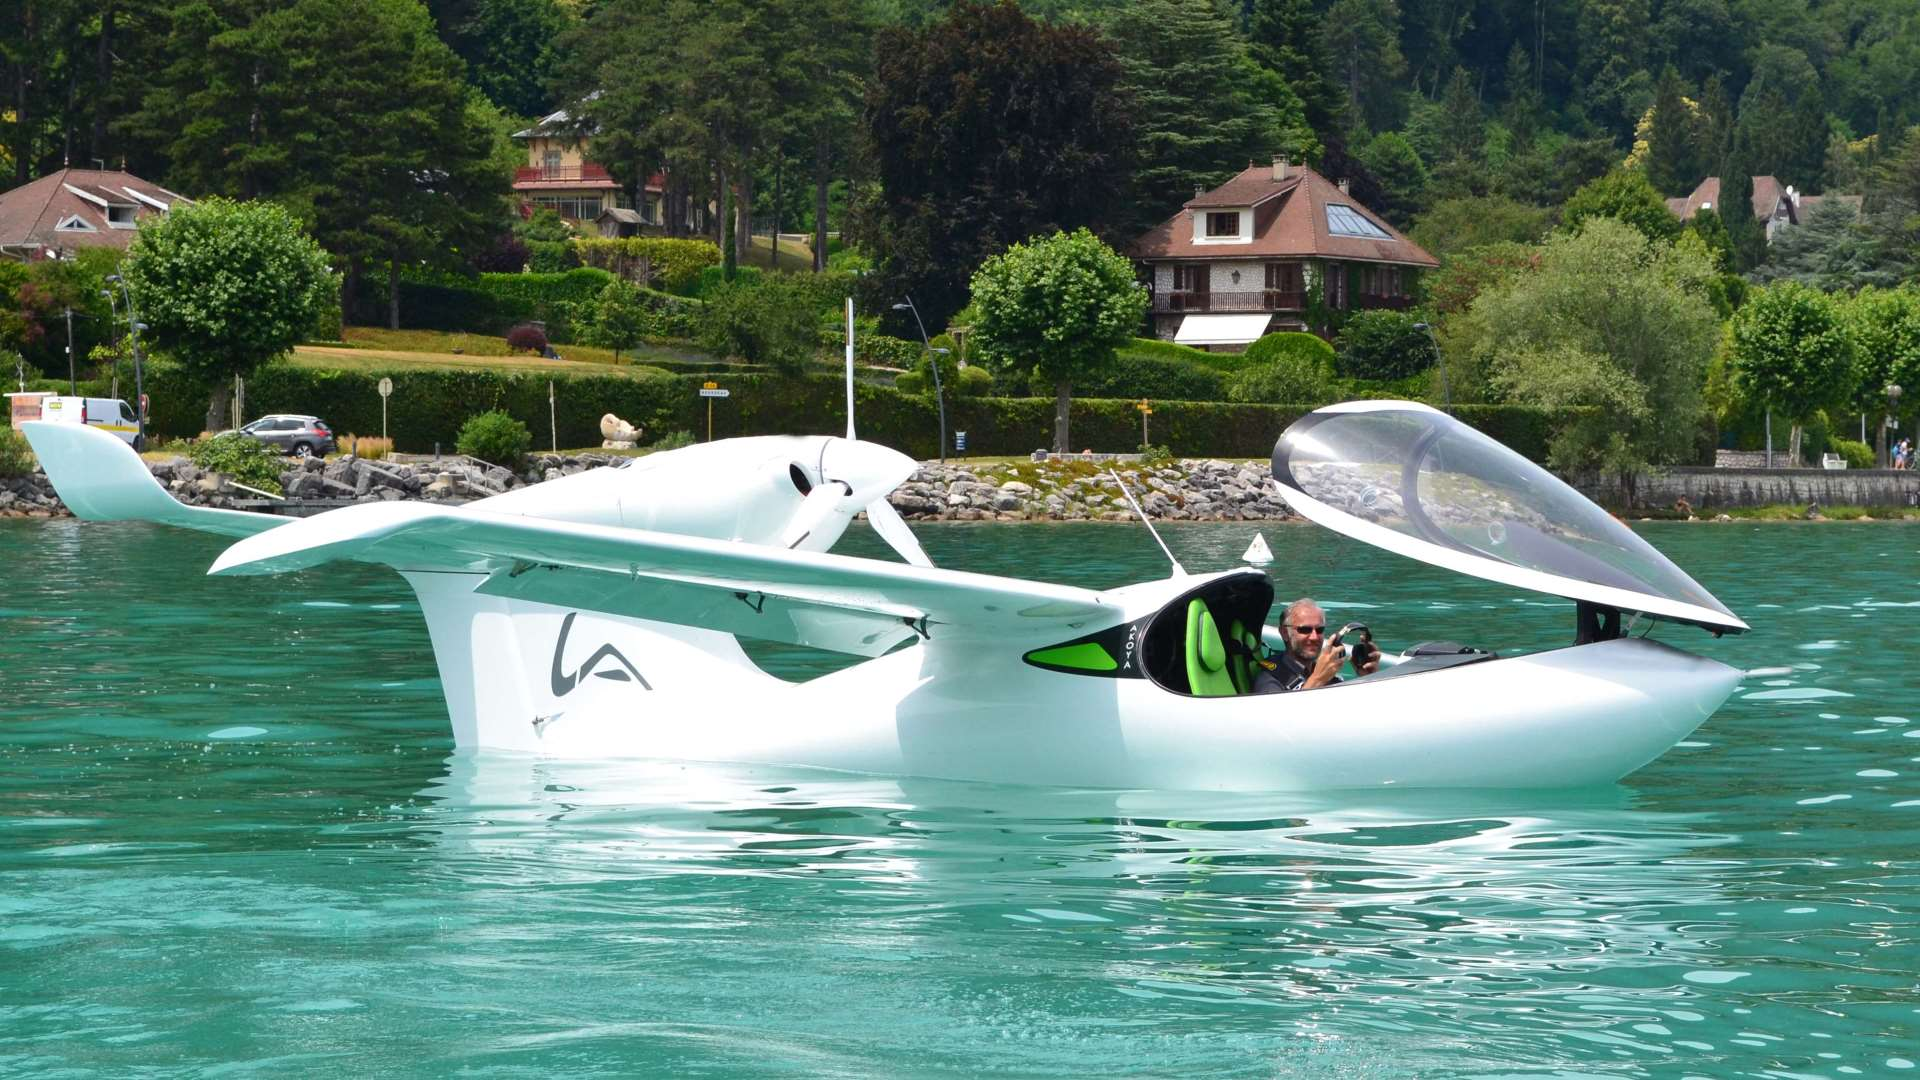 ski plane by Lisa Akoya an aircraft floating on a body of water